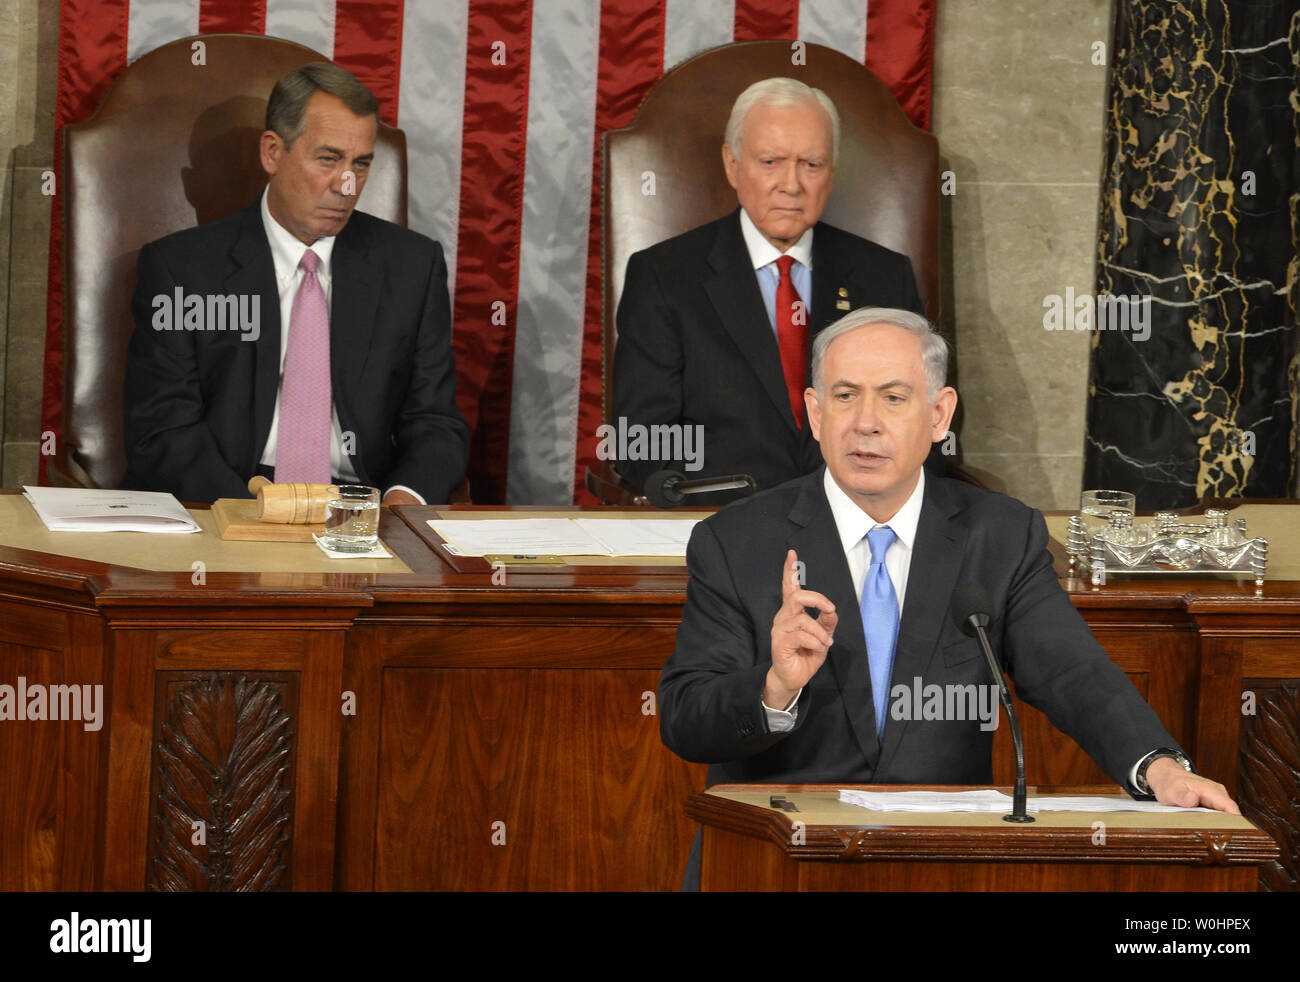 Israeli Prime Minister Benjamin Netanyahu addresses a joint meeting of Congress on nuclear talks with Iran, as House Speaker John Boehner (R-OH),(L), and Sen. Orrin Hatch (R-UT) listen, at the U.S. Capitol, March 3, 2015, in Washington, DC. The controversial speech, seen by many as interferring in American and Israeli politics prompted many congressmen to boycott the event.   UPI/Mike Theiler - Stock Image